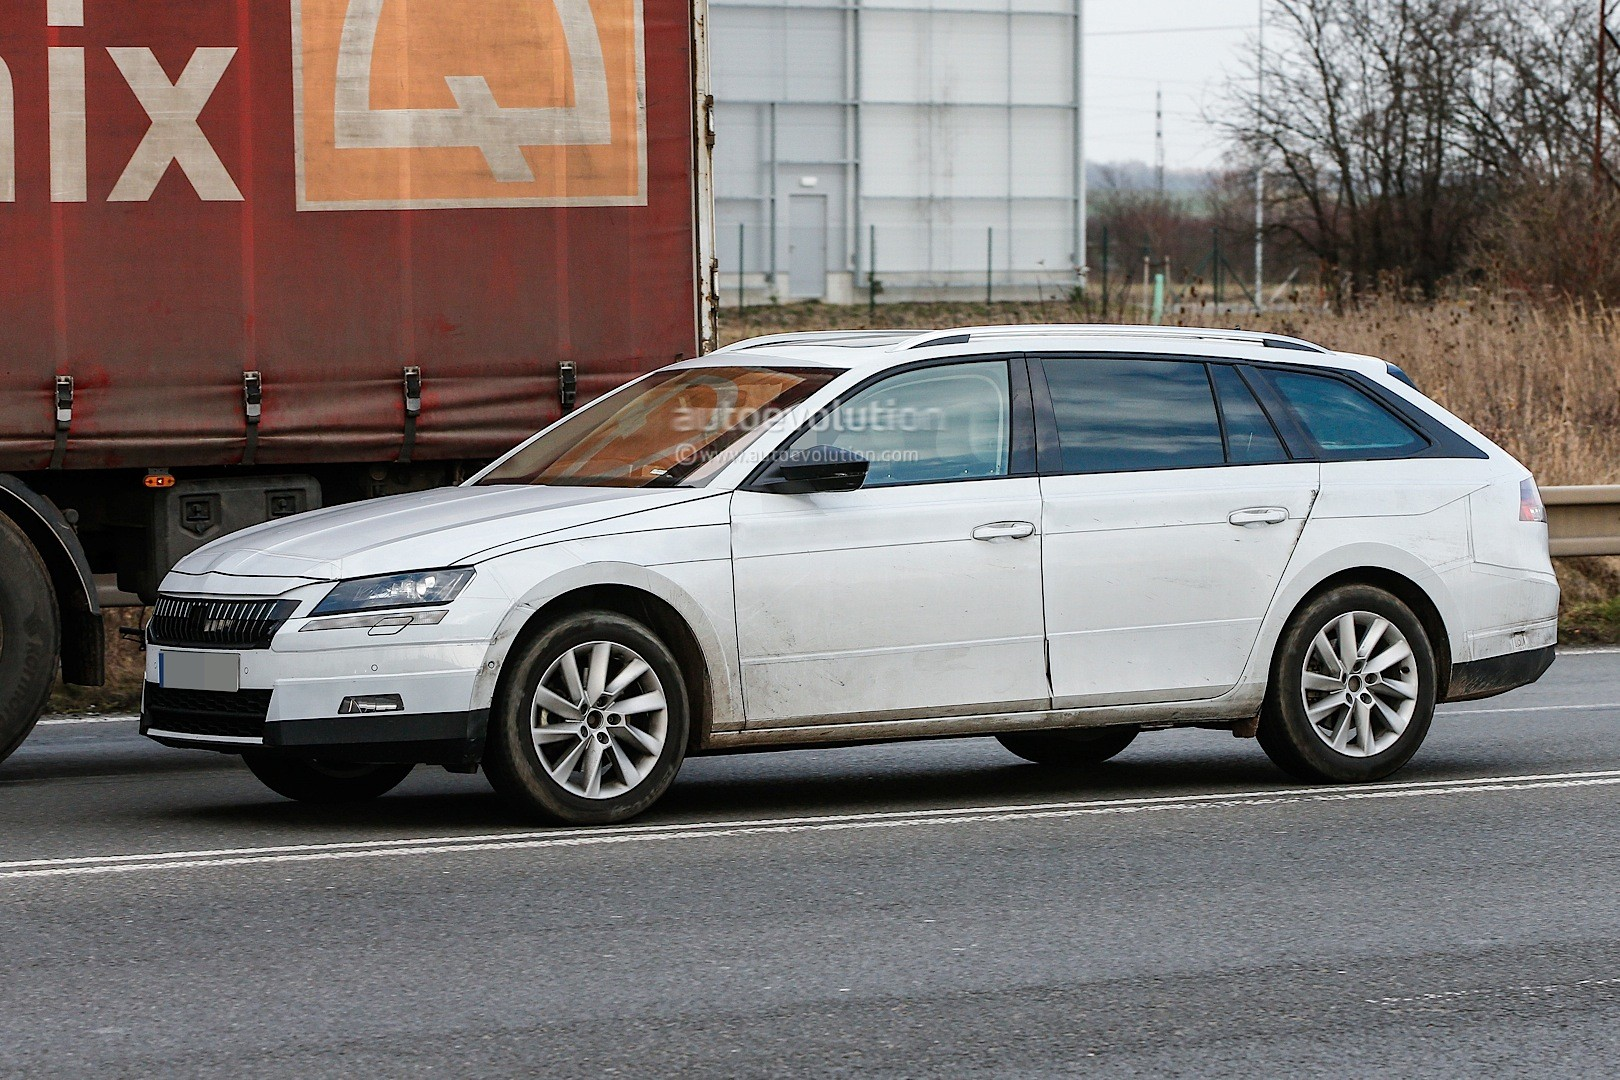 Spyshots: 2015 Skoda Superb Combi / Estate First Photos